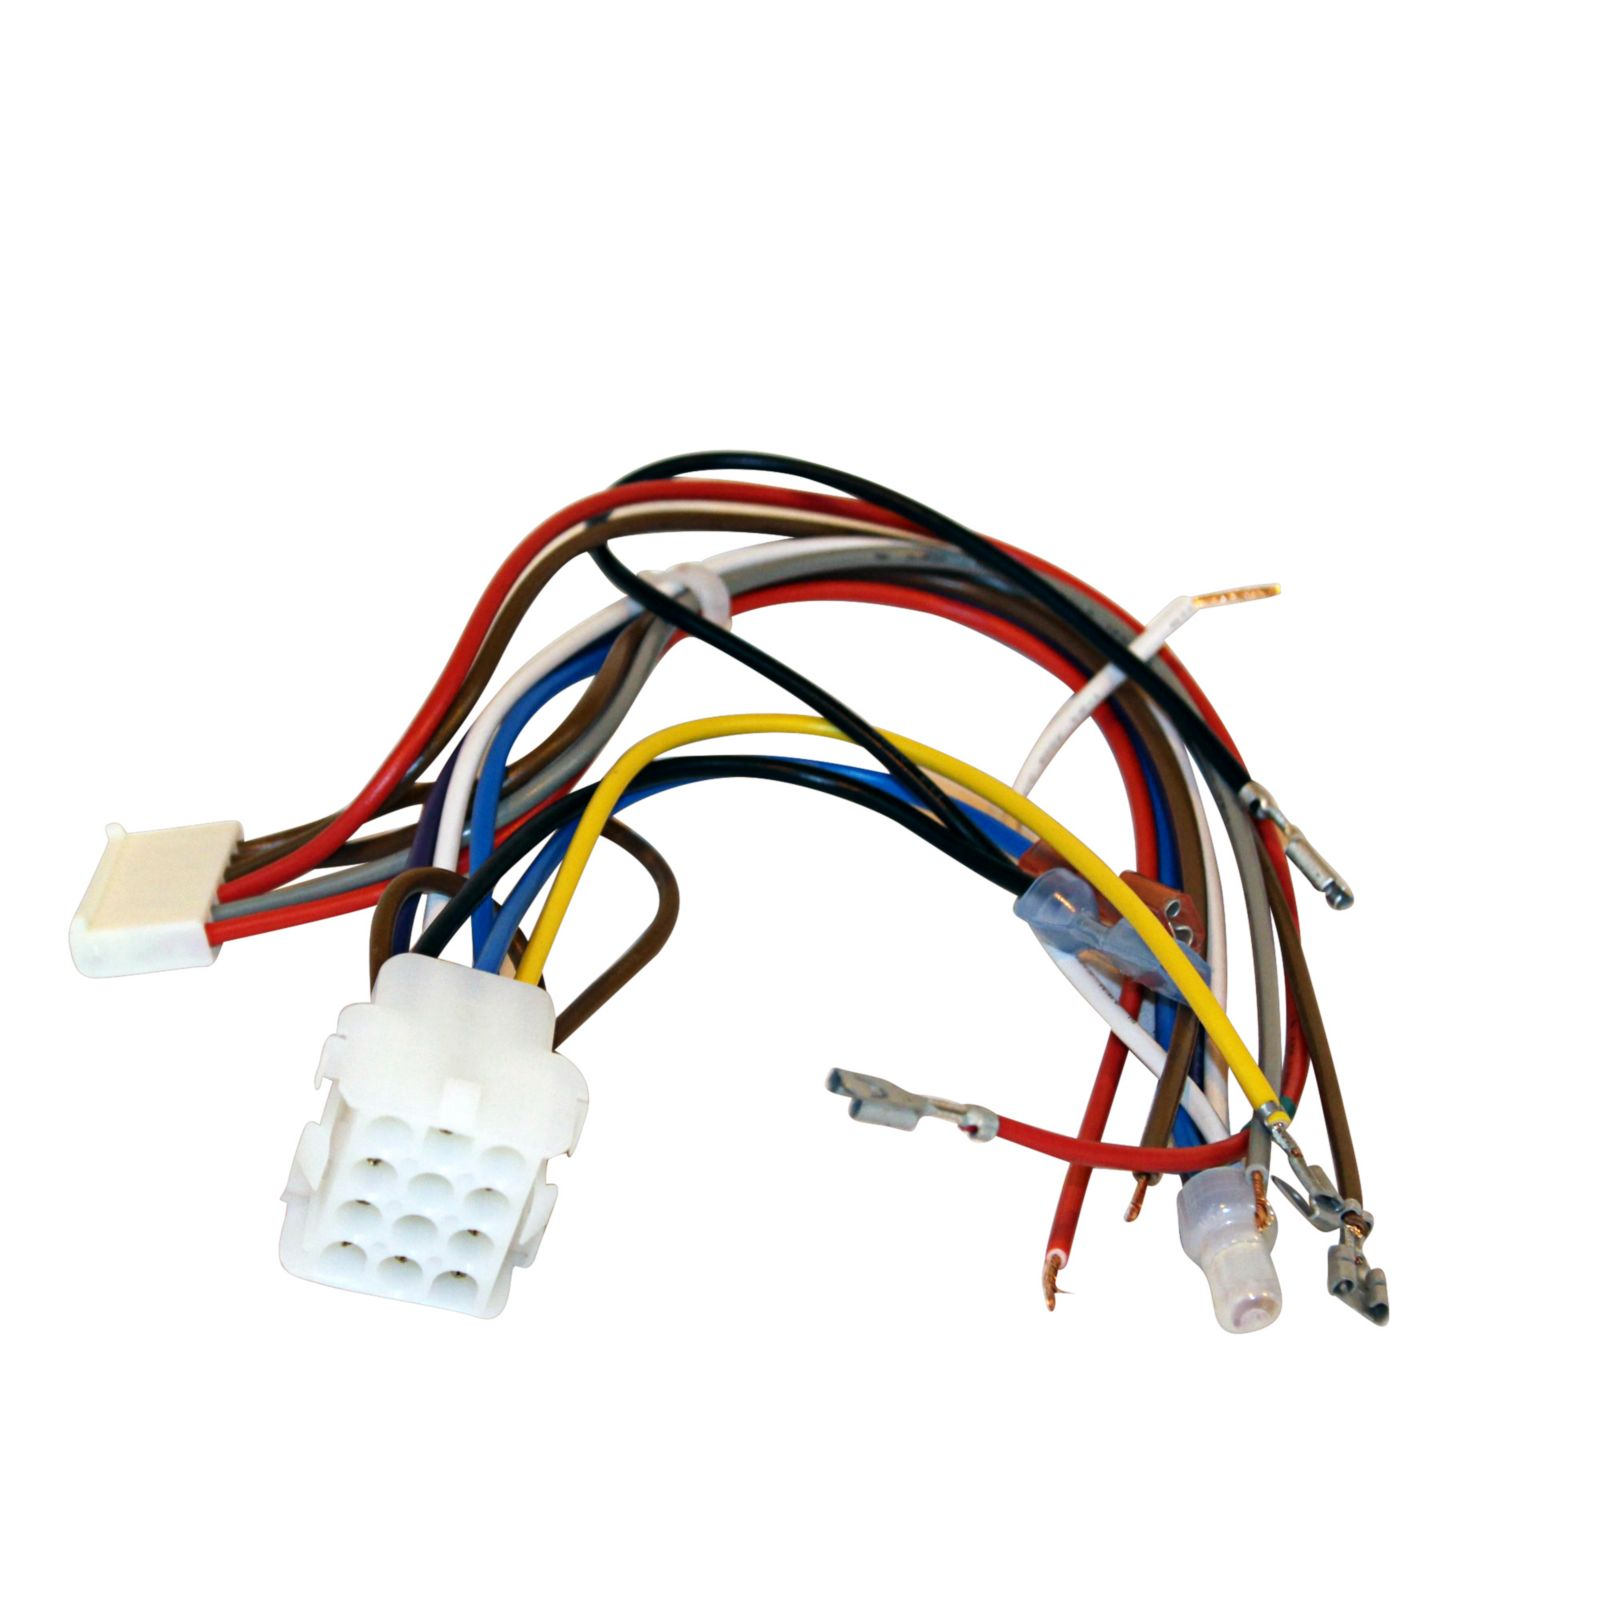 RCD Parts 322027-701 Terminal Leads / Wiring Harness / Plugs ...